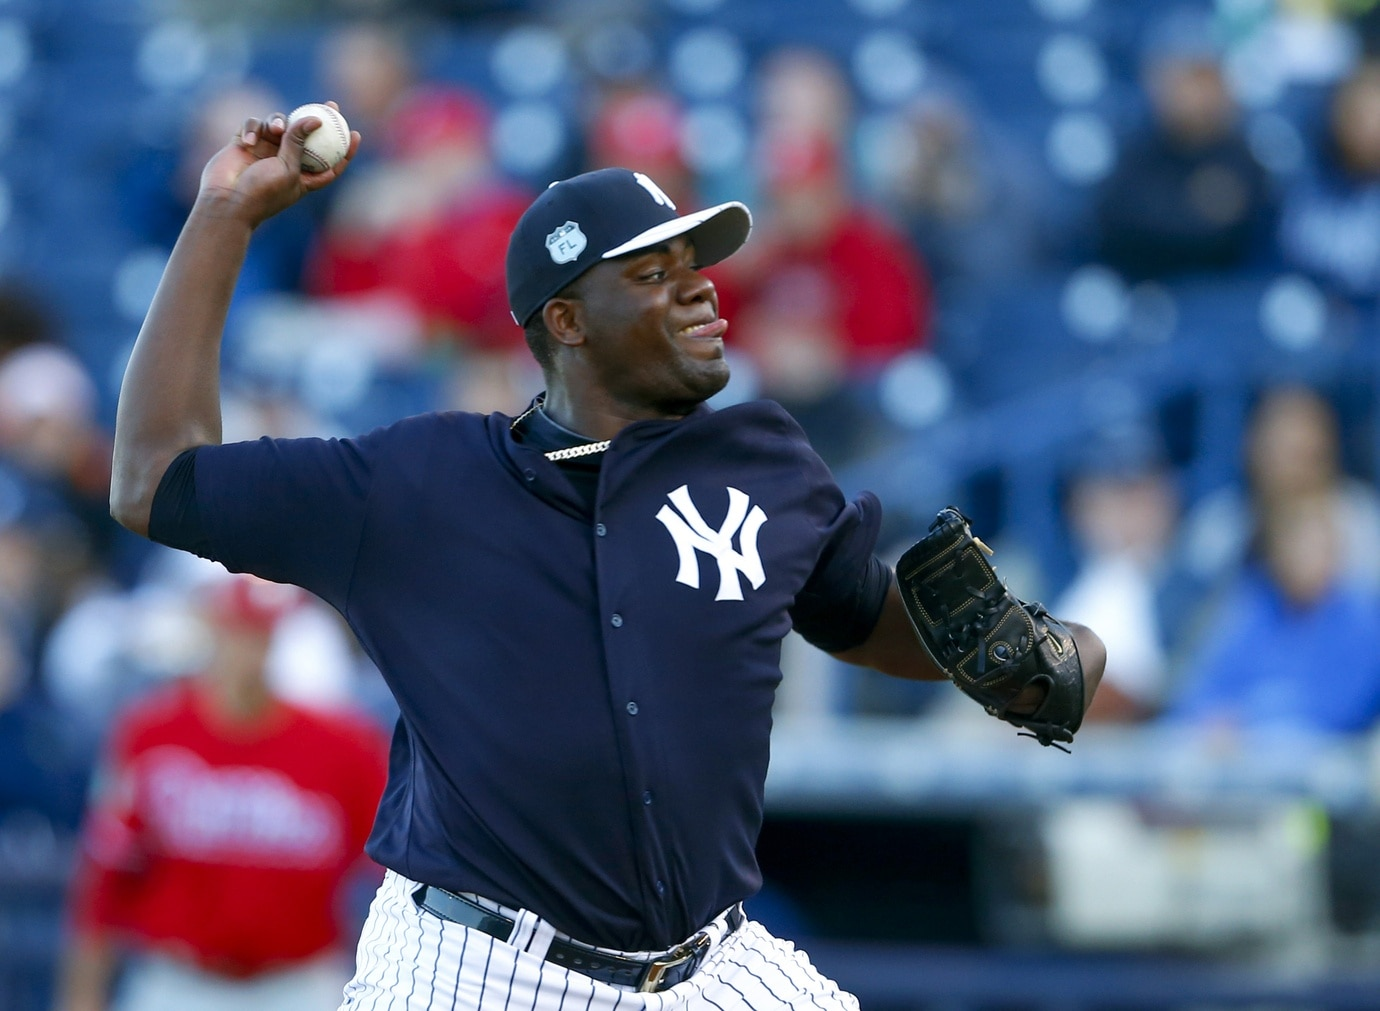 Yankees Michael Pineda